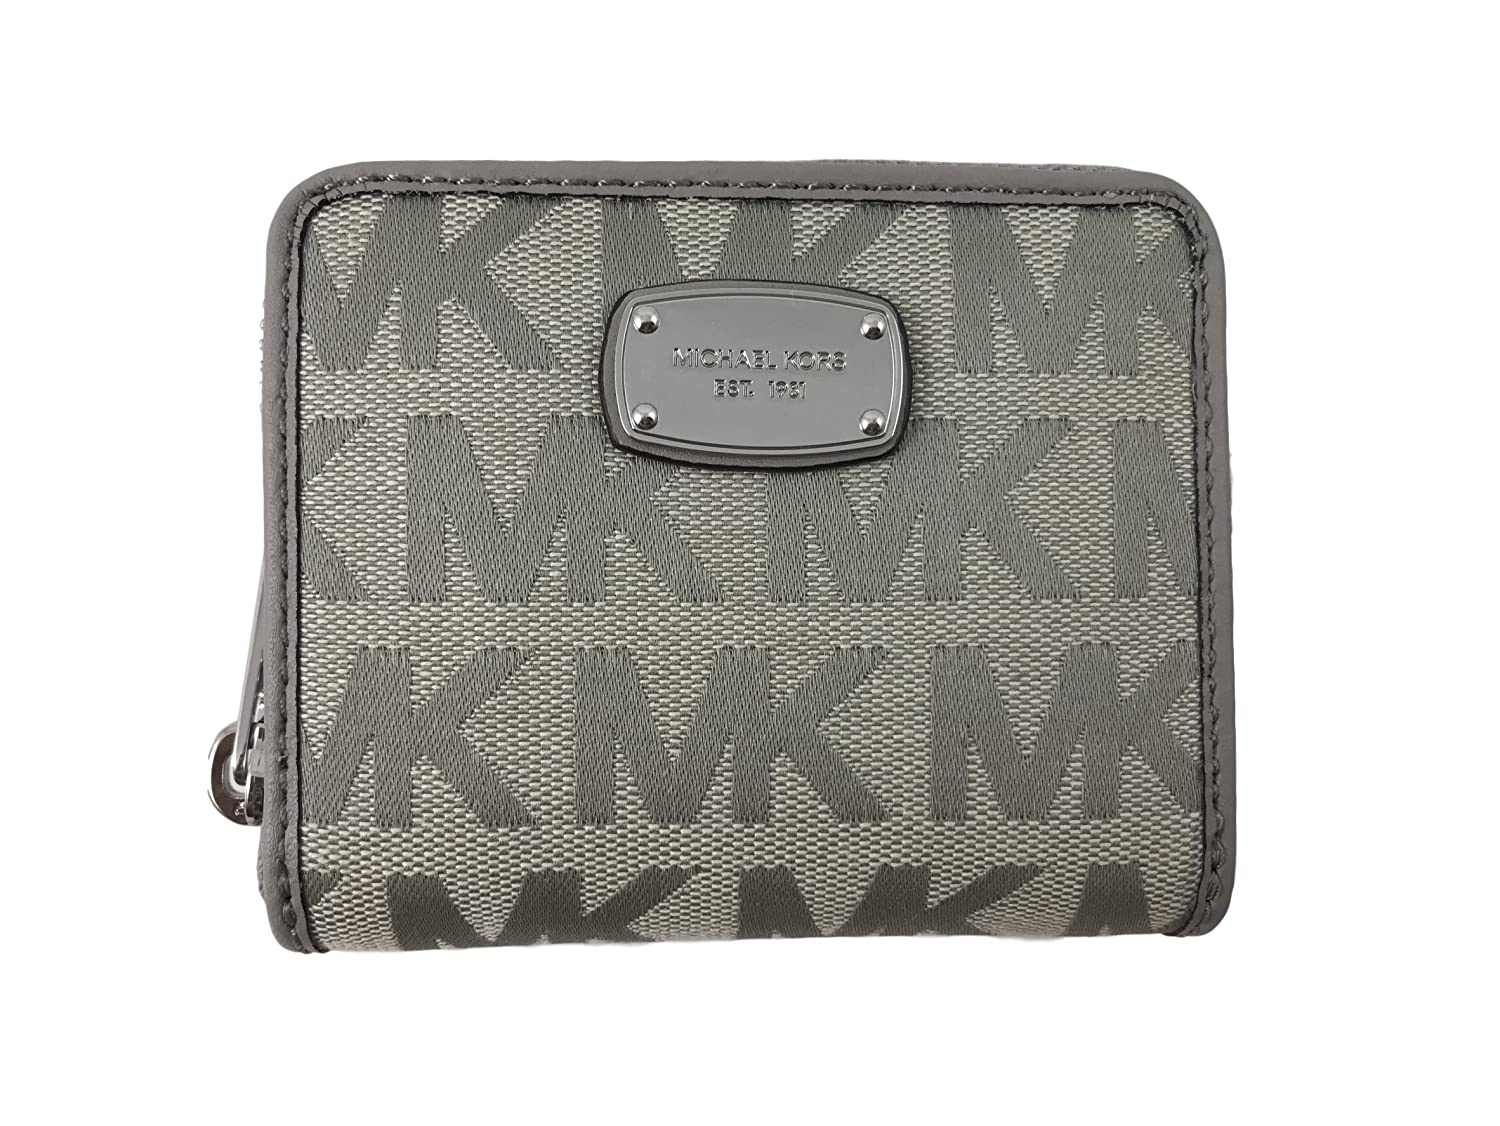 12b8bb16d9f8 Michael Kors Jet Set Item Signature Jacquard Zip Around Bifold Wallet in  Light Grey at Amazon Women's Clothing store: